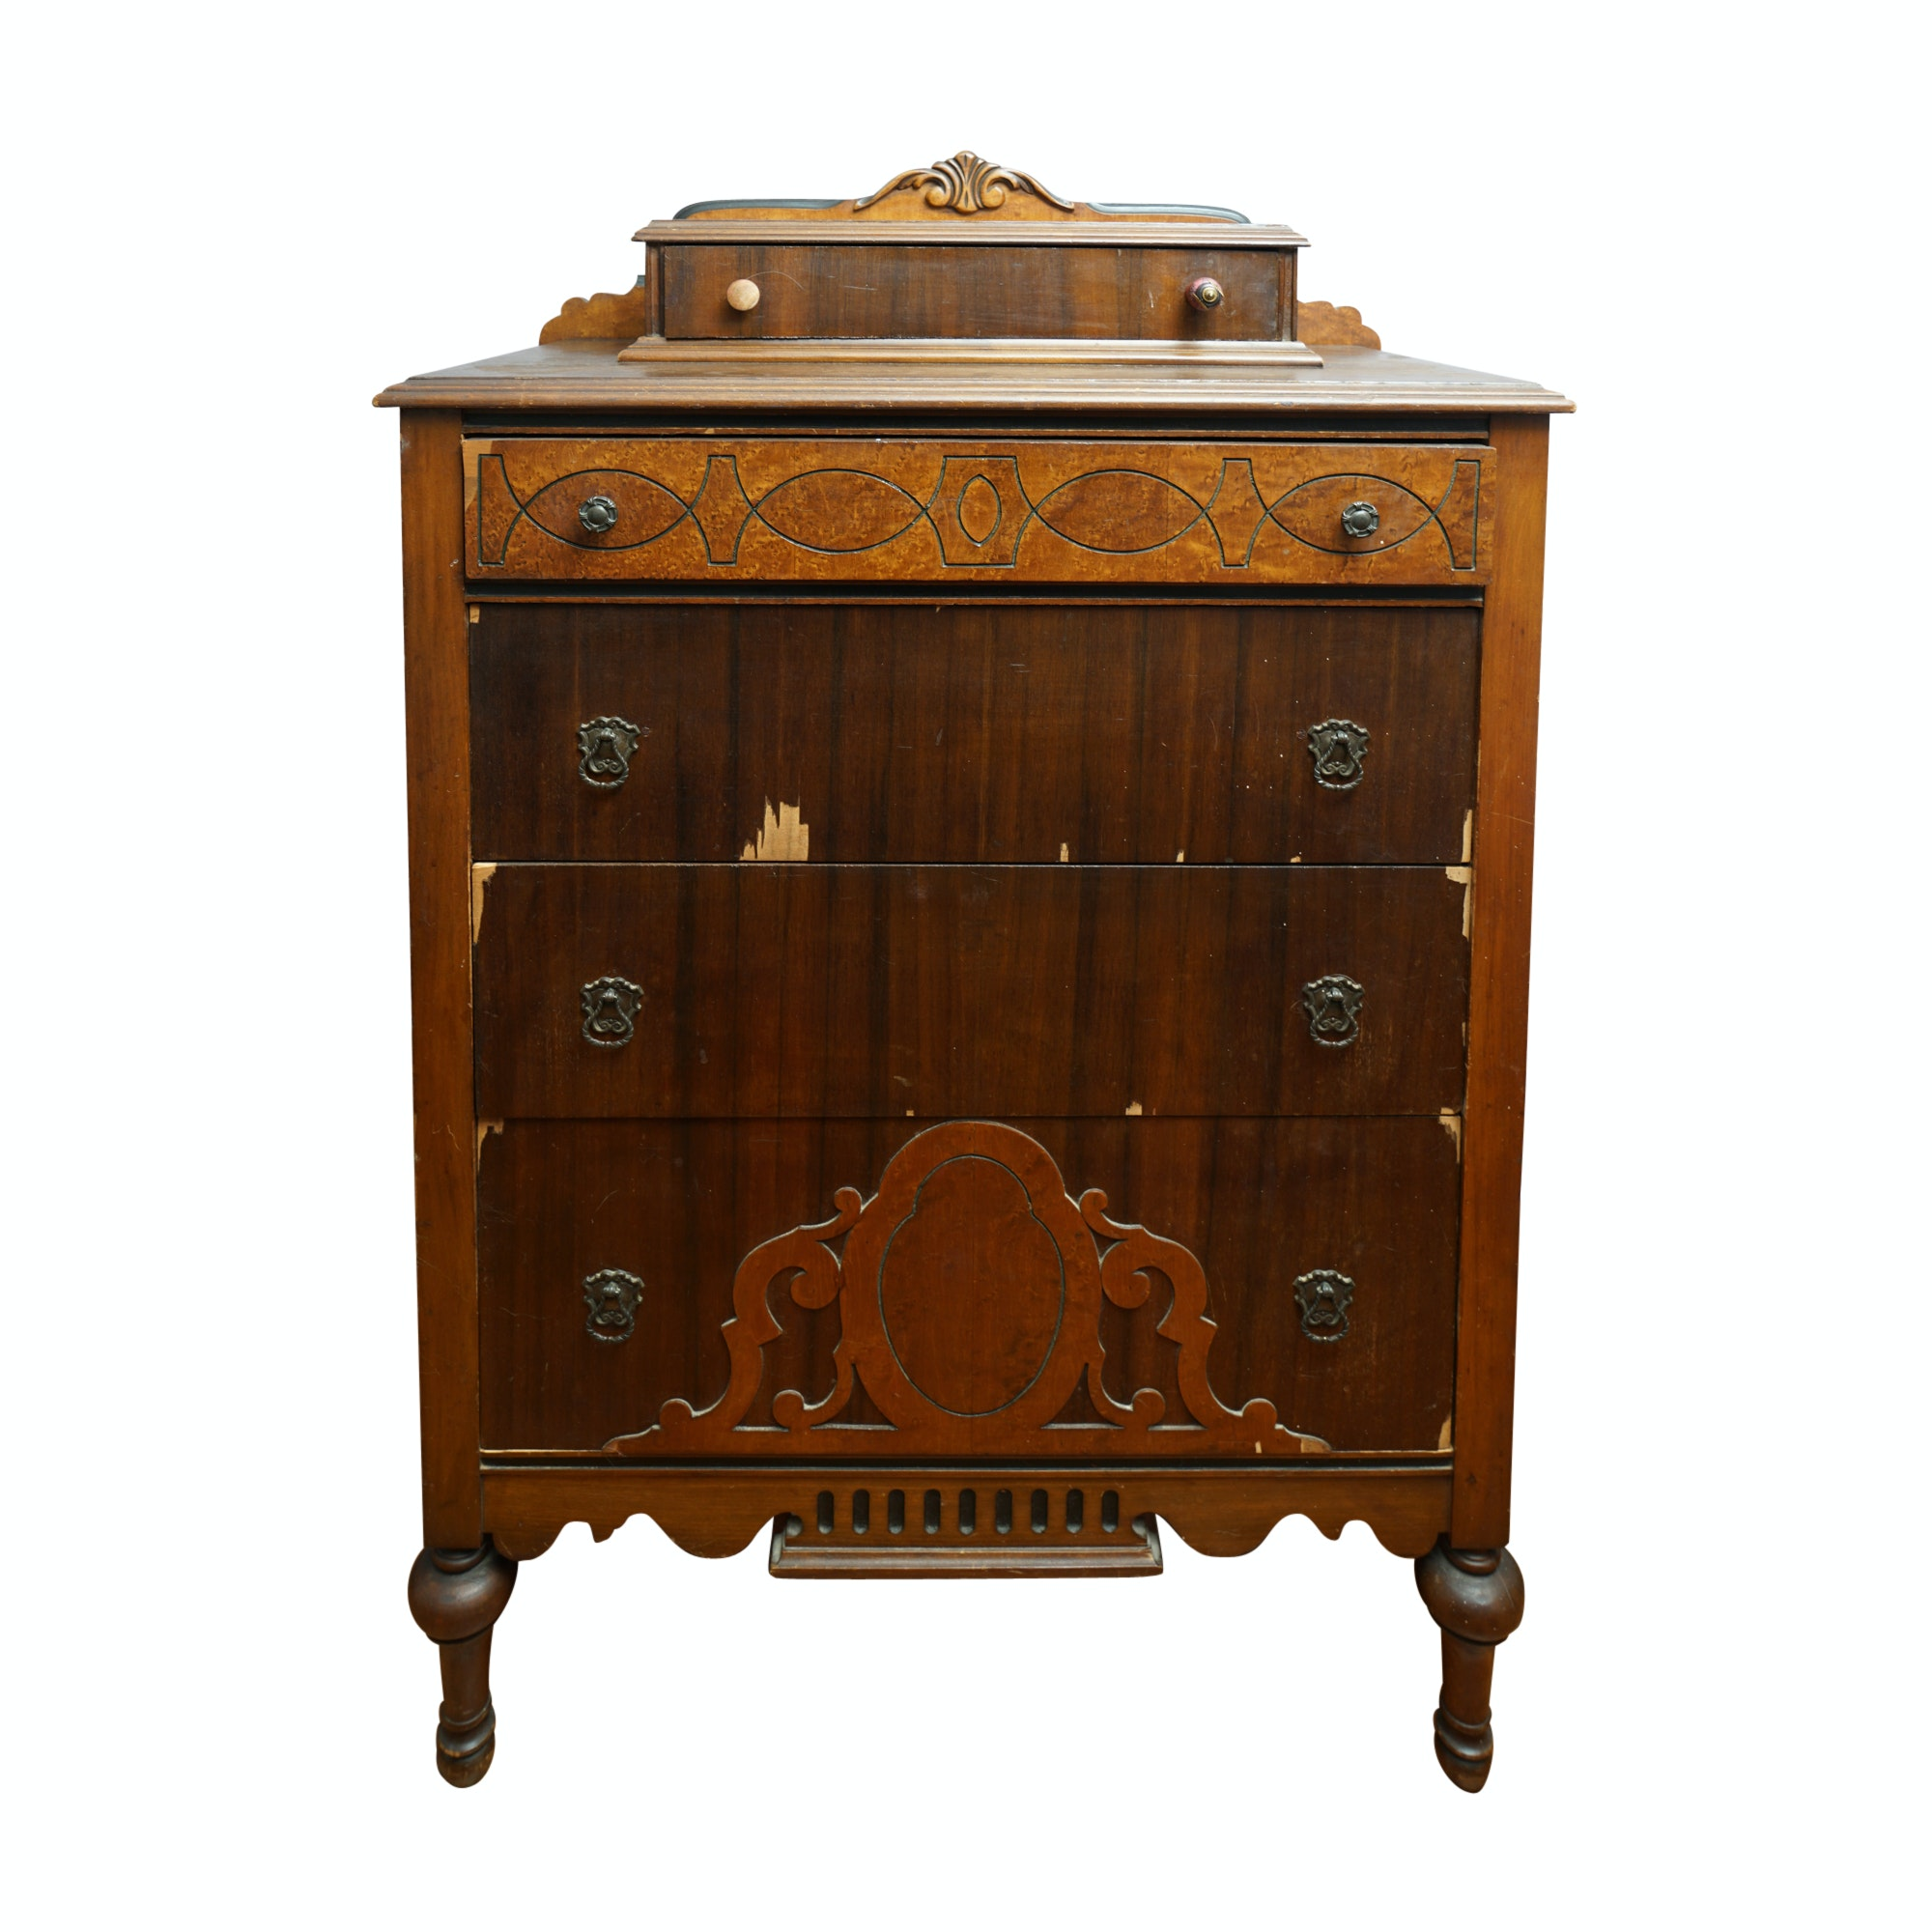 Victorian Walnut and Mahogany Tiered Chest of Drawers